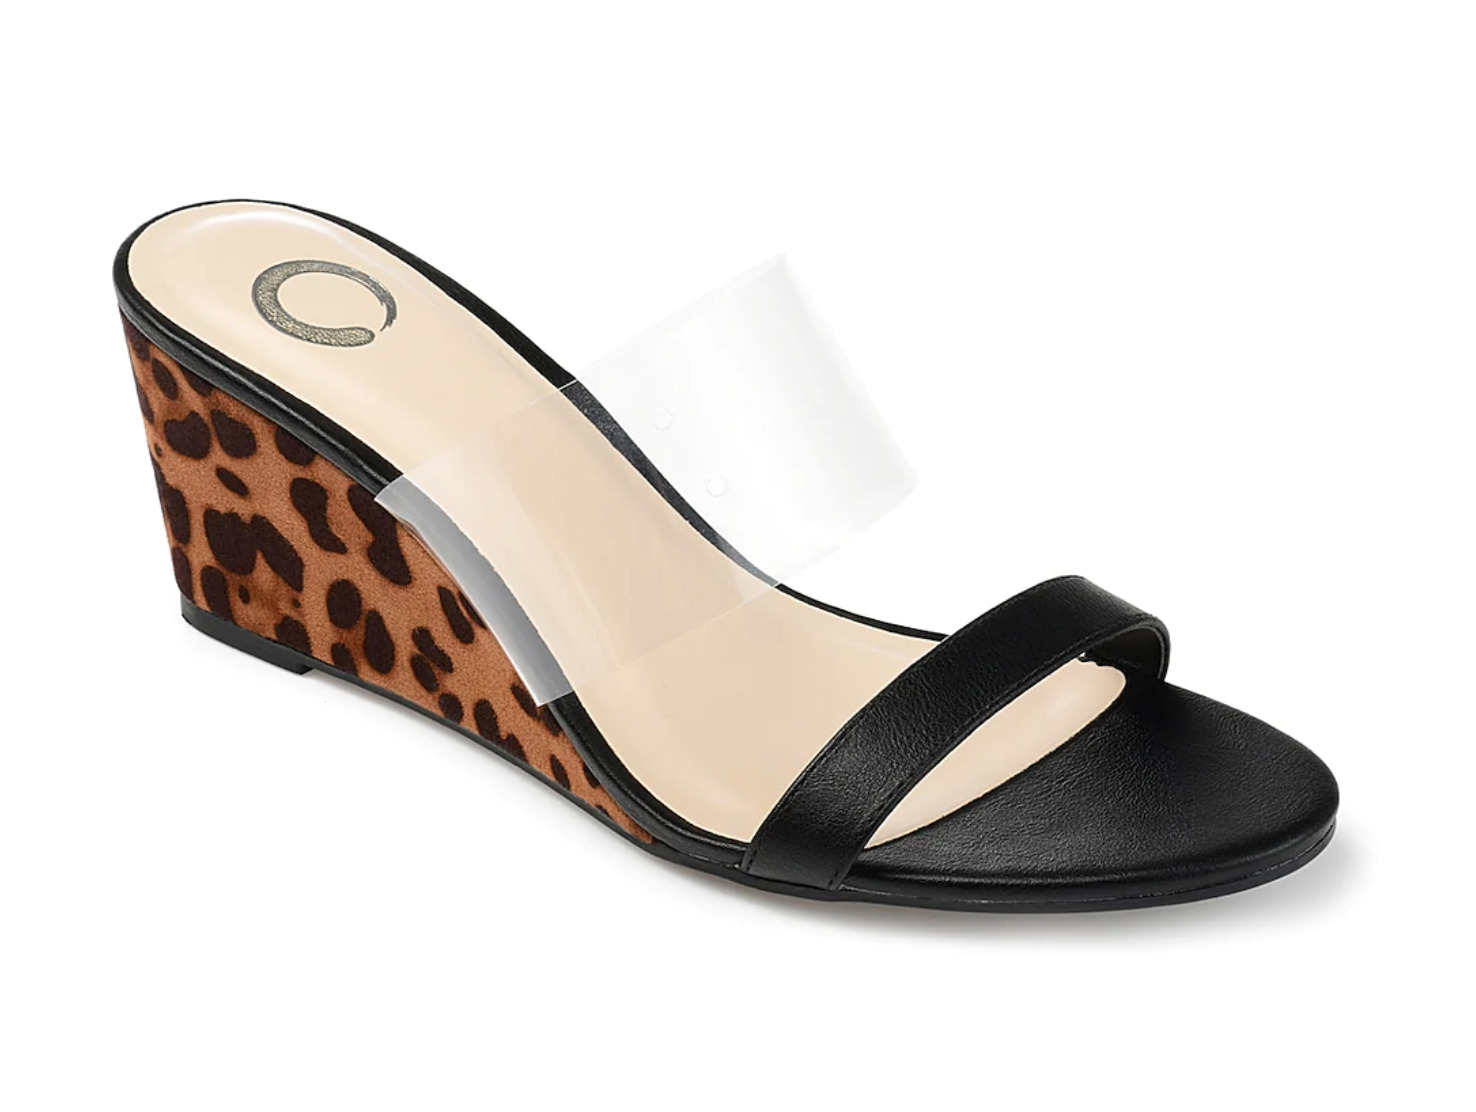 Journee Collection Wedge Sandal